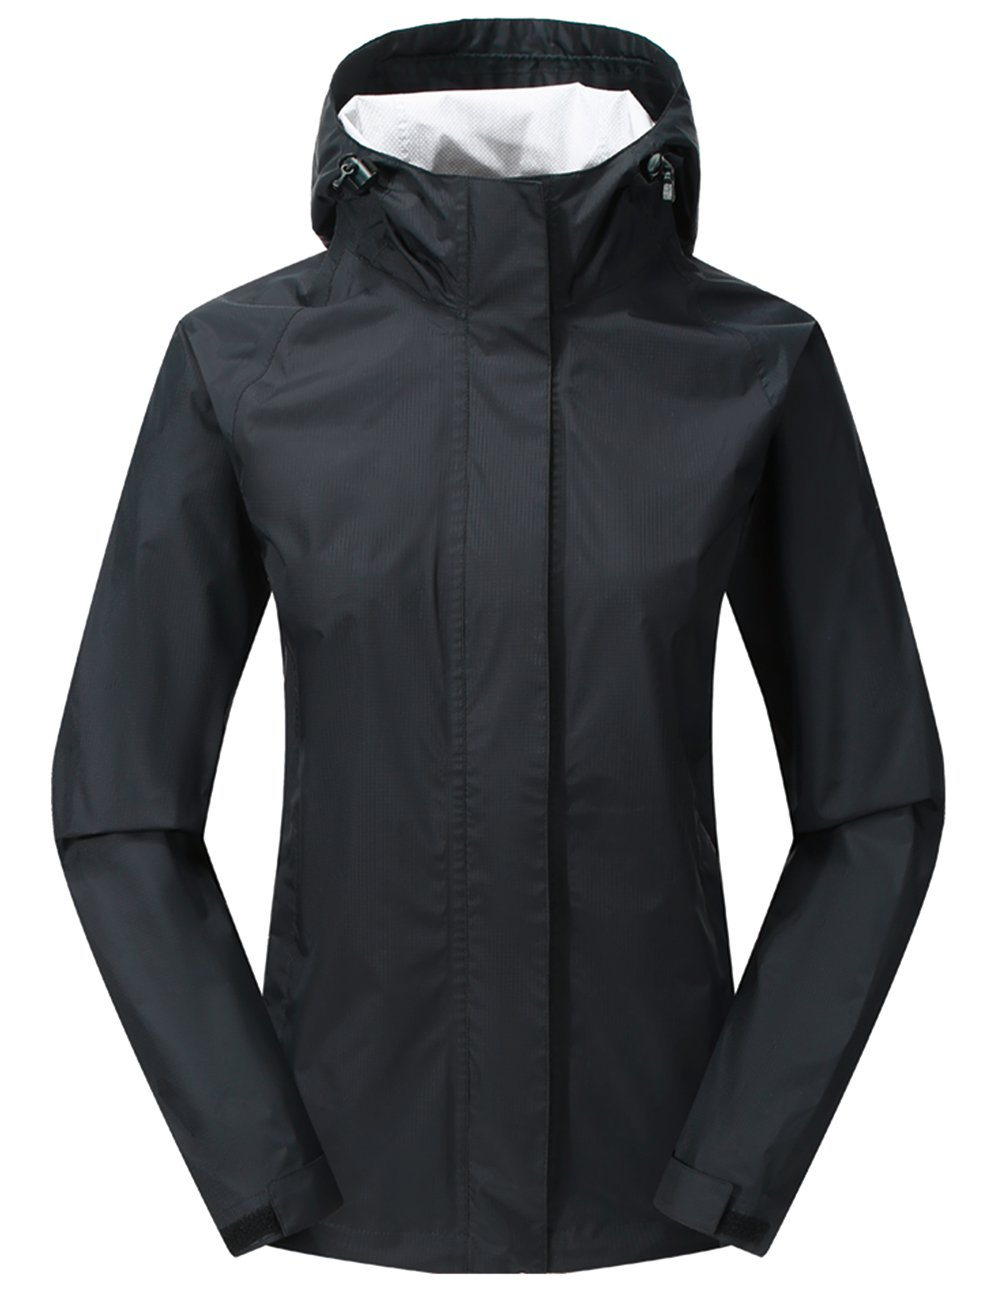 Women Hooded Rain Jacket - Diamond Candy Outdoor Lightweight Waterproof Coat